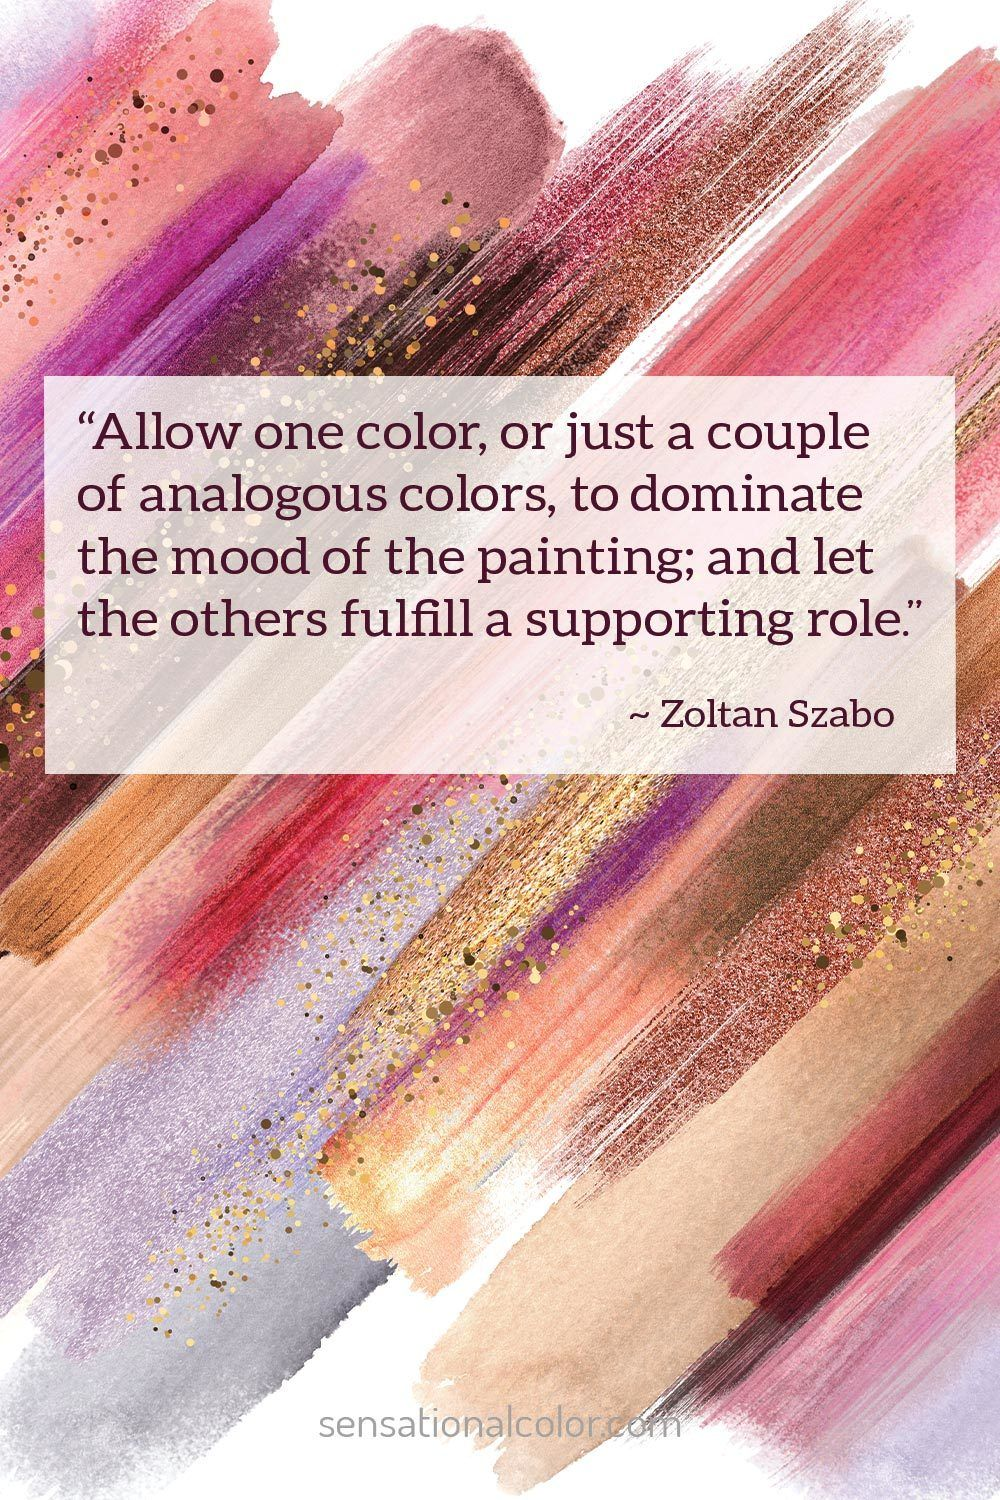 """Allow one color, or just a couple of analogous colors, to dominate the mood of the painting; and let the others fulfill a supporting role."" - Zoltan Szabo"